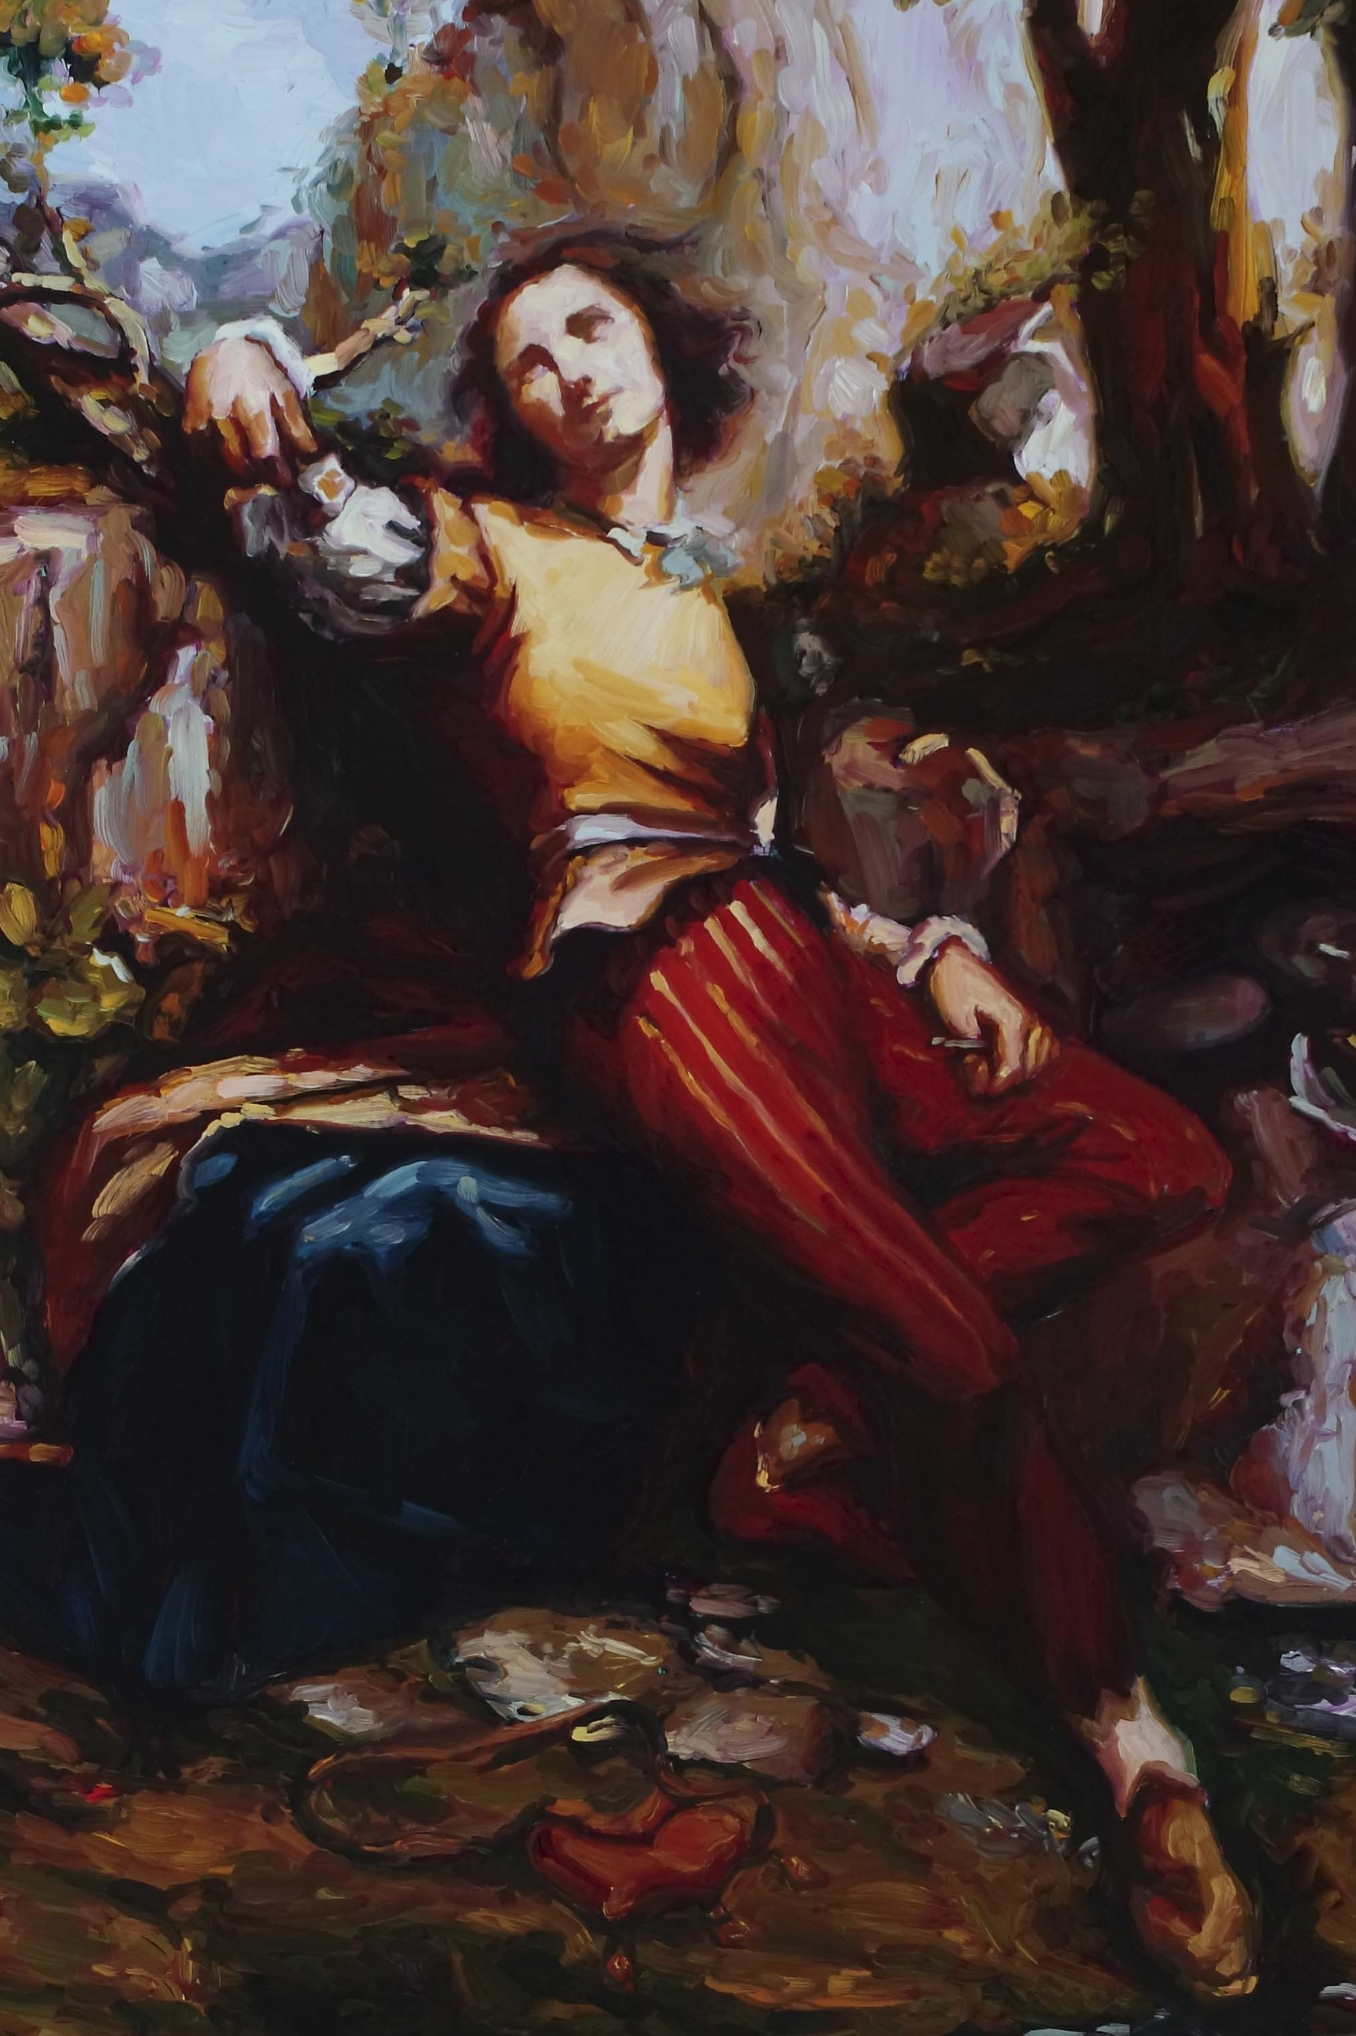 Reclining Sculptor (after Courbet), oil on board, 60 x 40 cm, 2008.